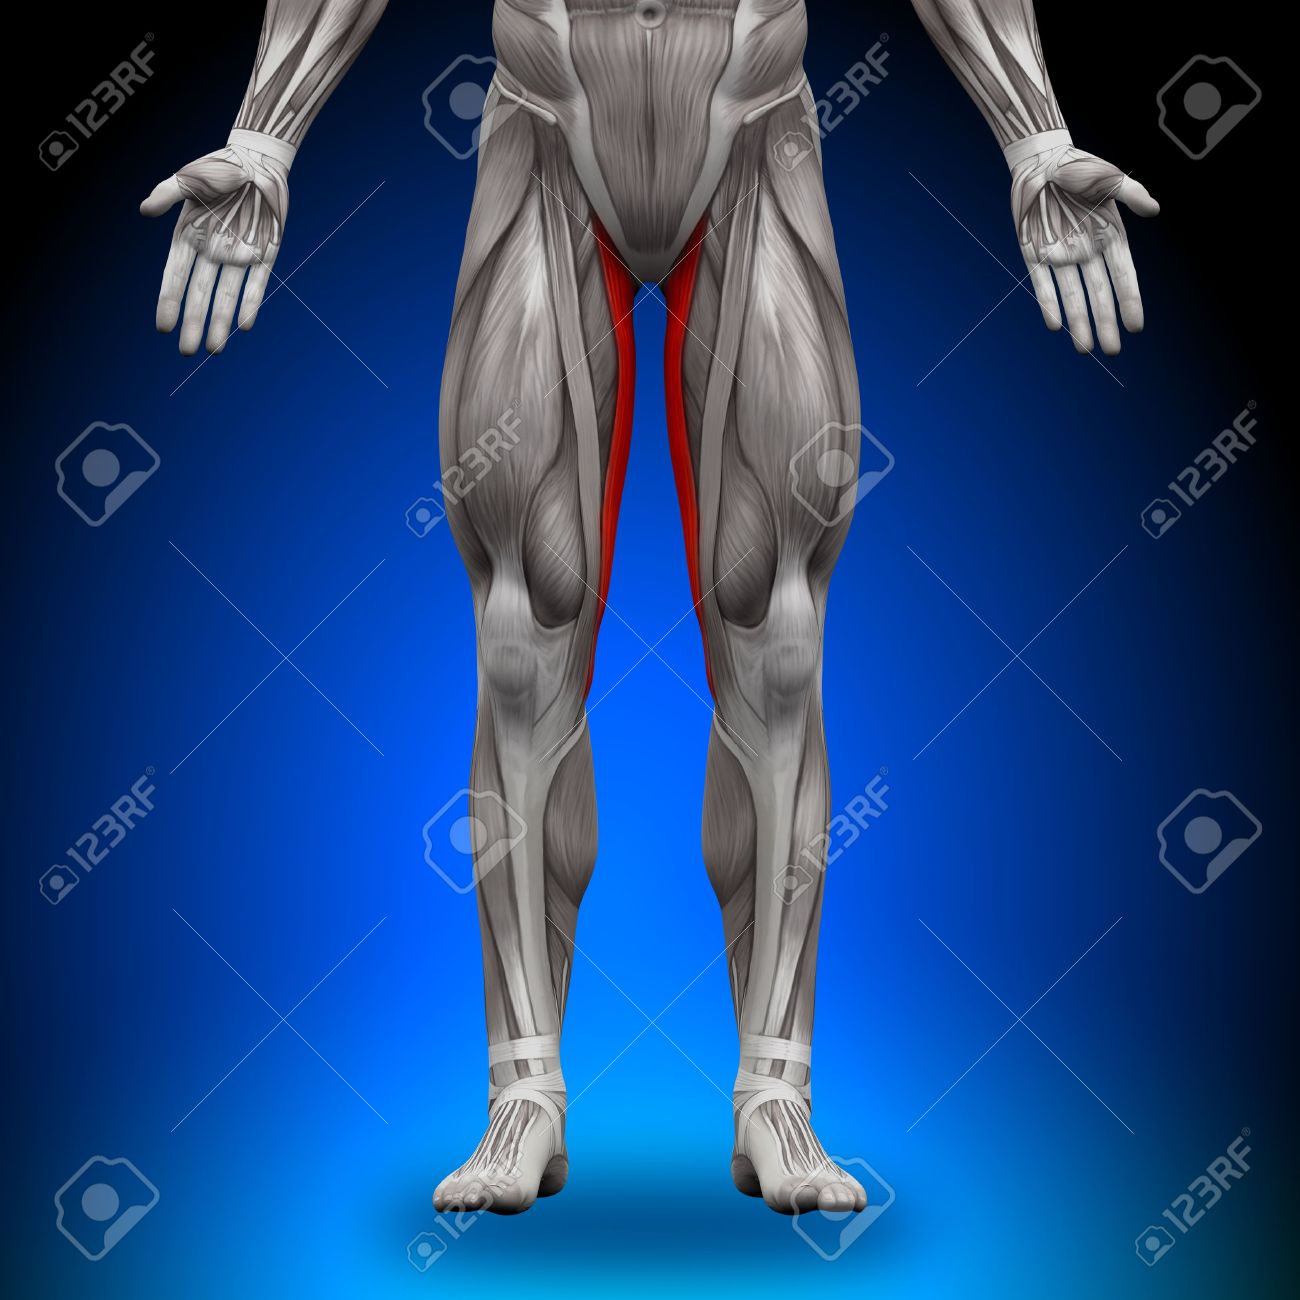 Gracilis Anatomy Muscles Stock Photo Picture And Royalty Free Image